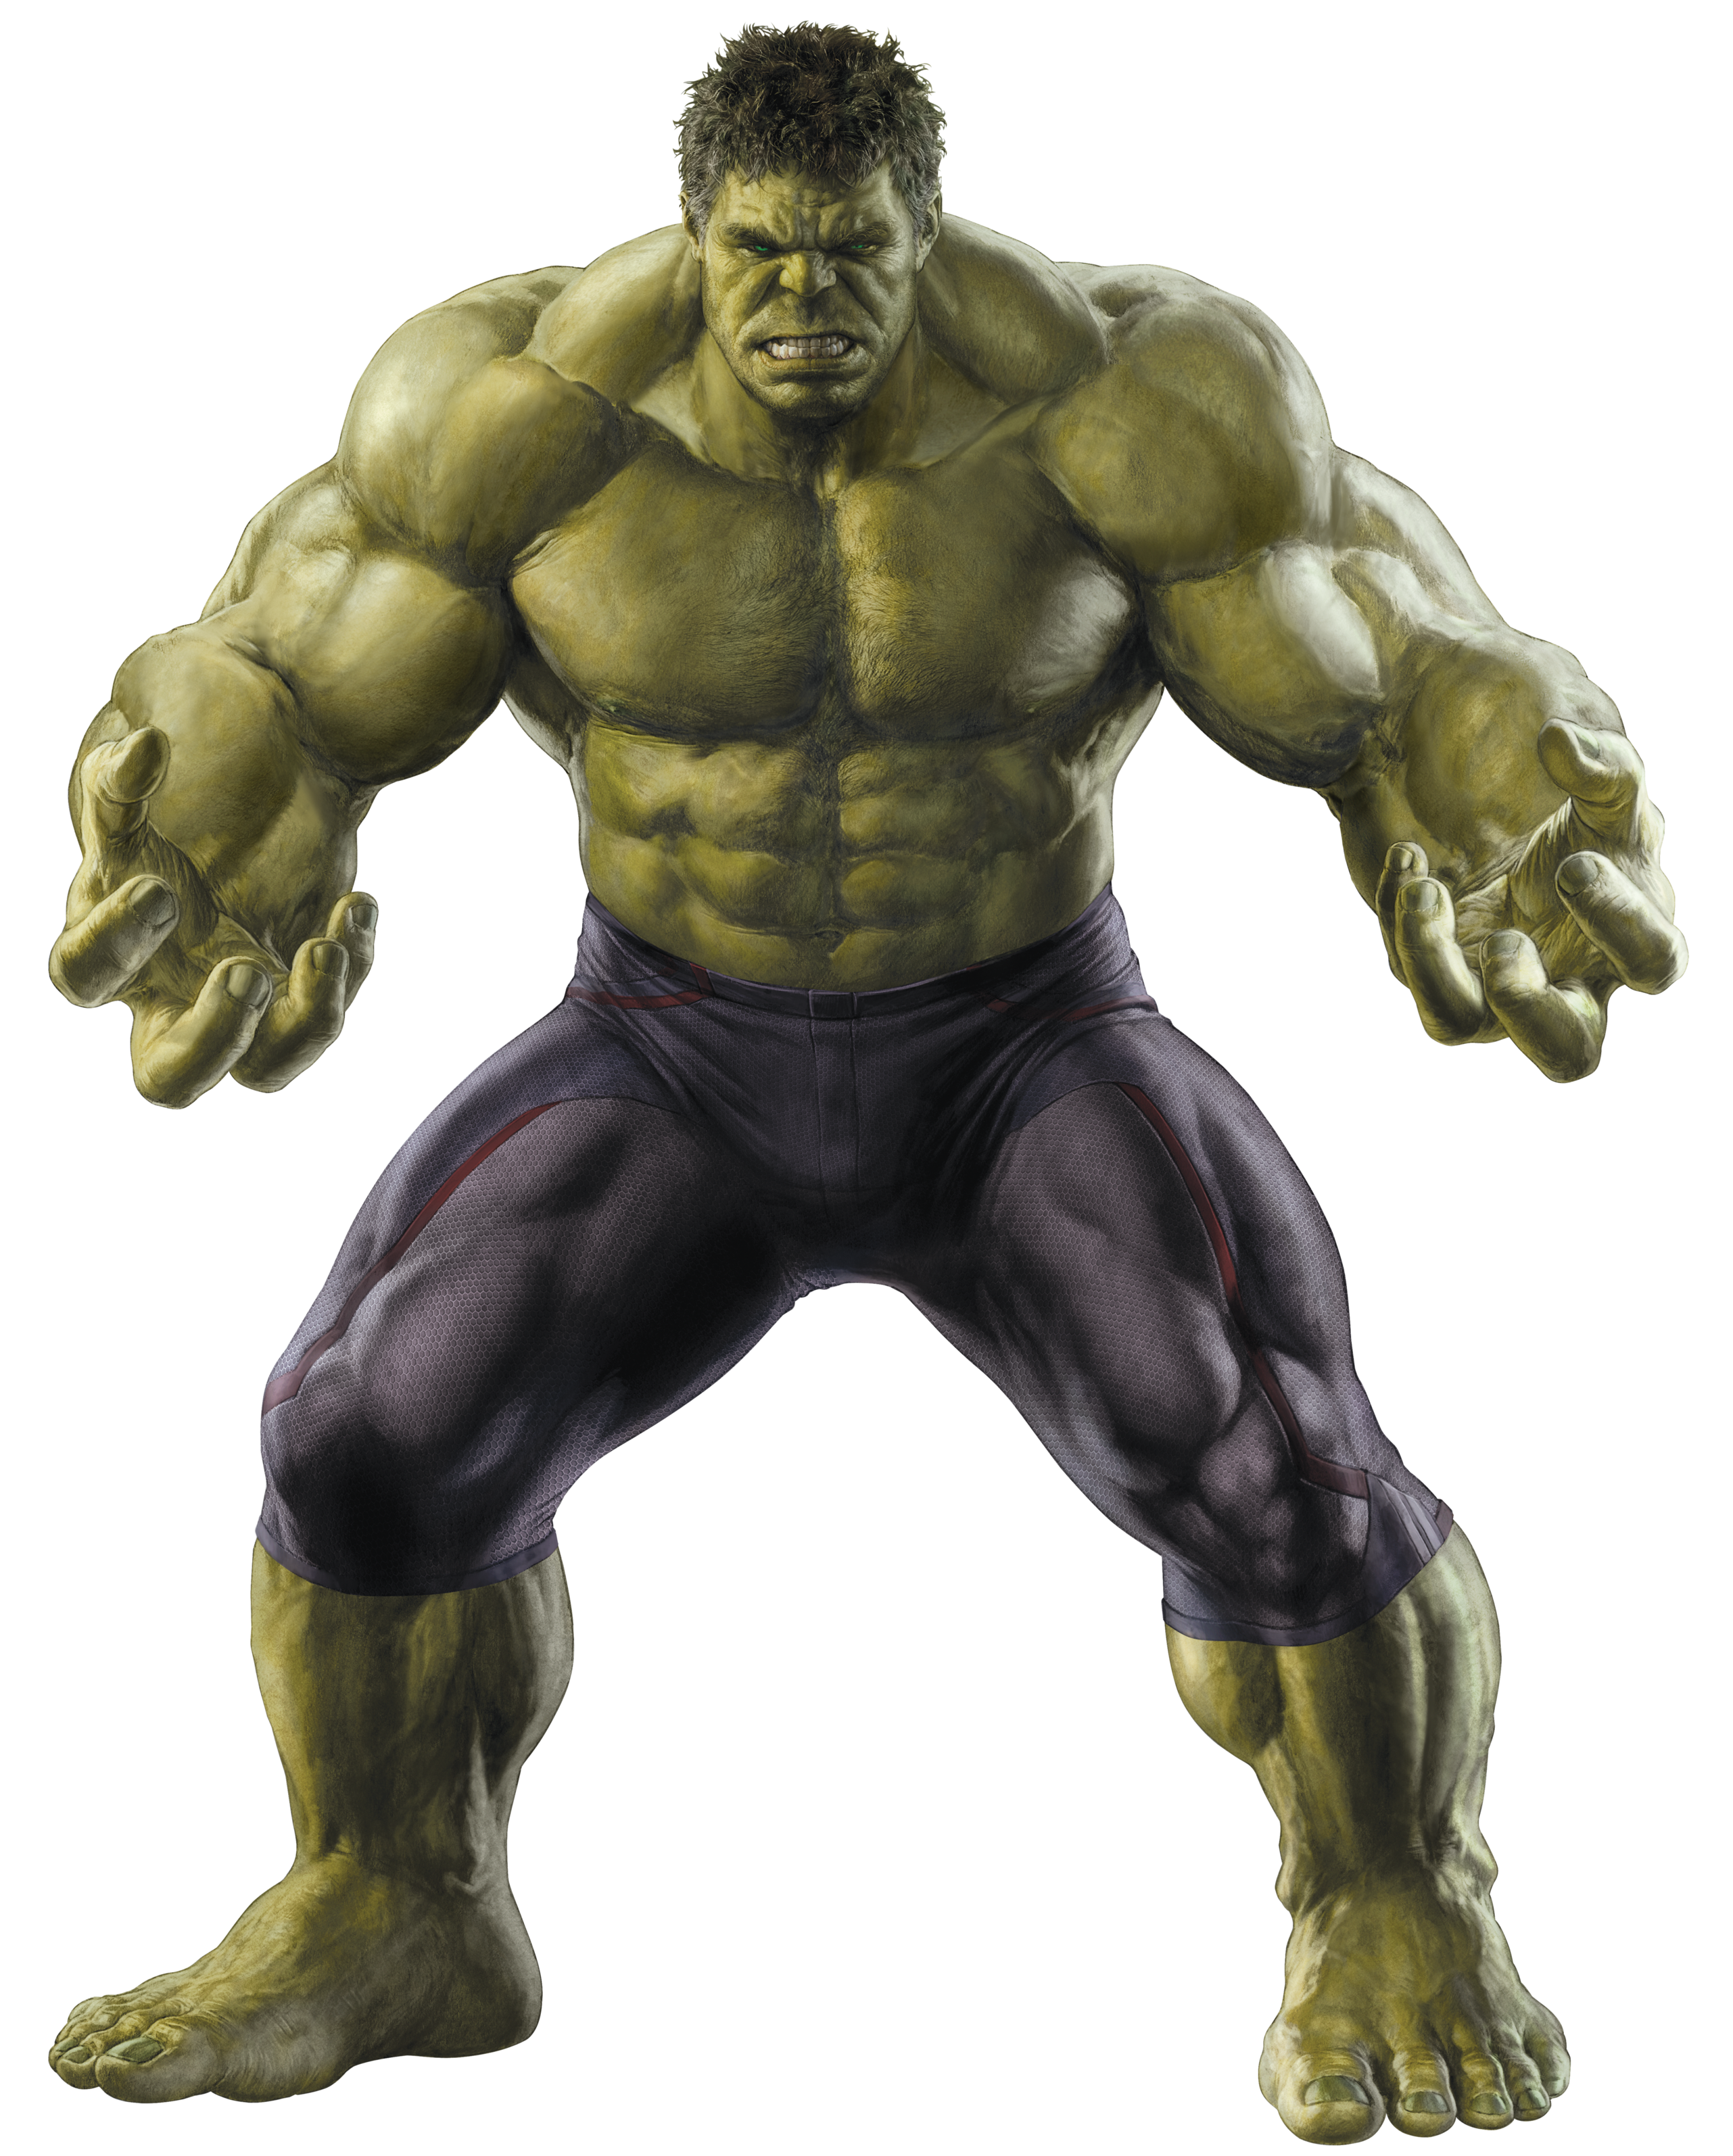 Head clipart hulk. Disney wiki fandom powered